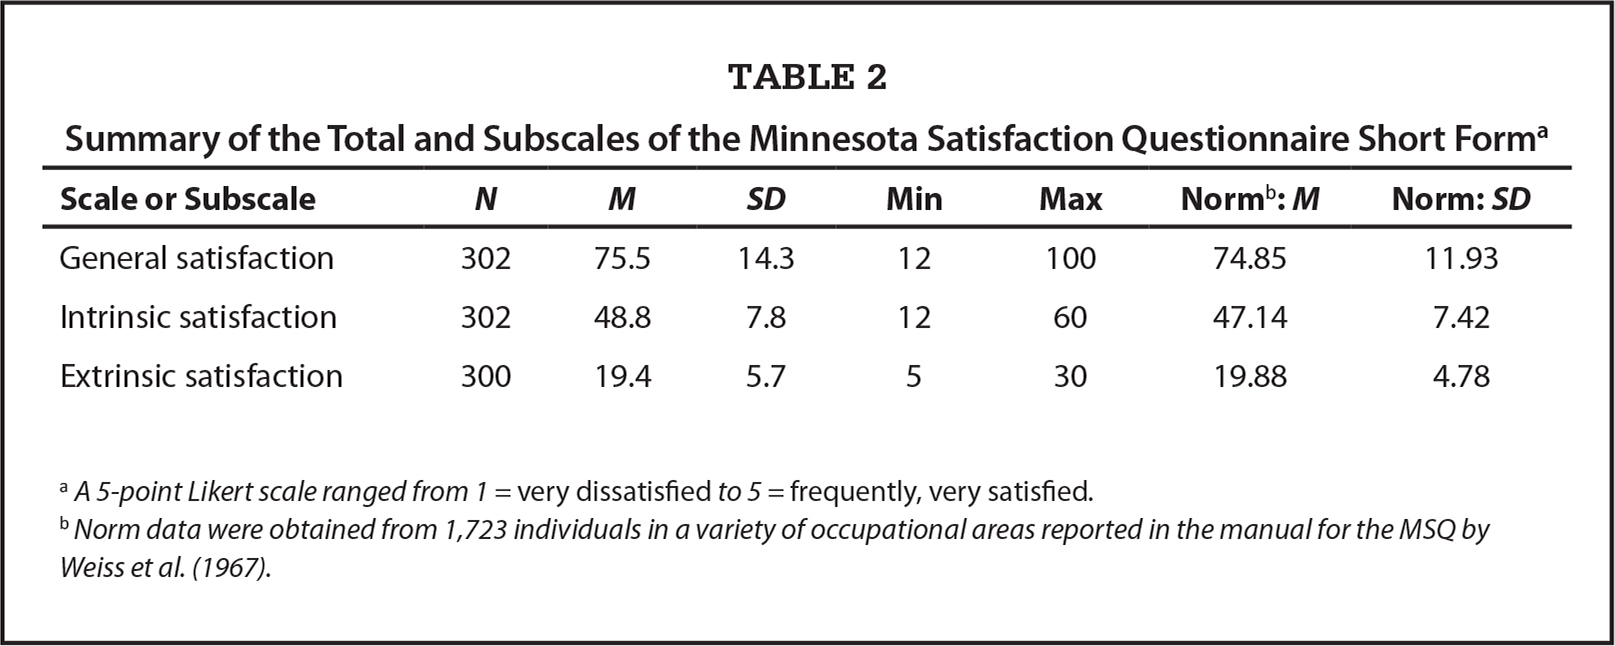 Summary of the Total and Subscales of the Minnesota Satisfaction Questionnaire Short Forma